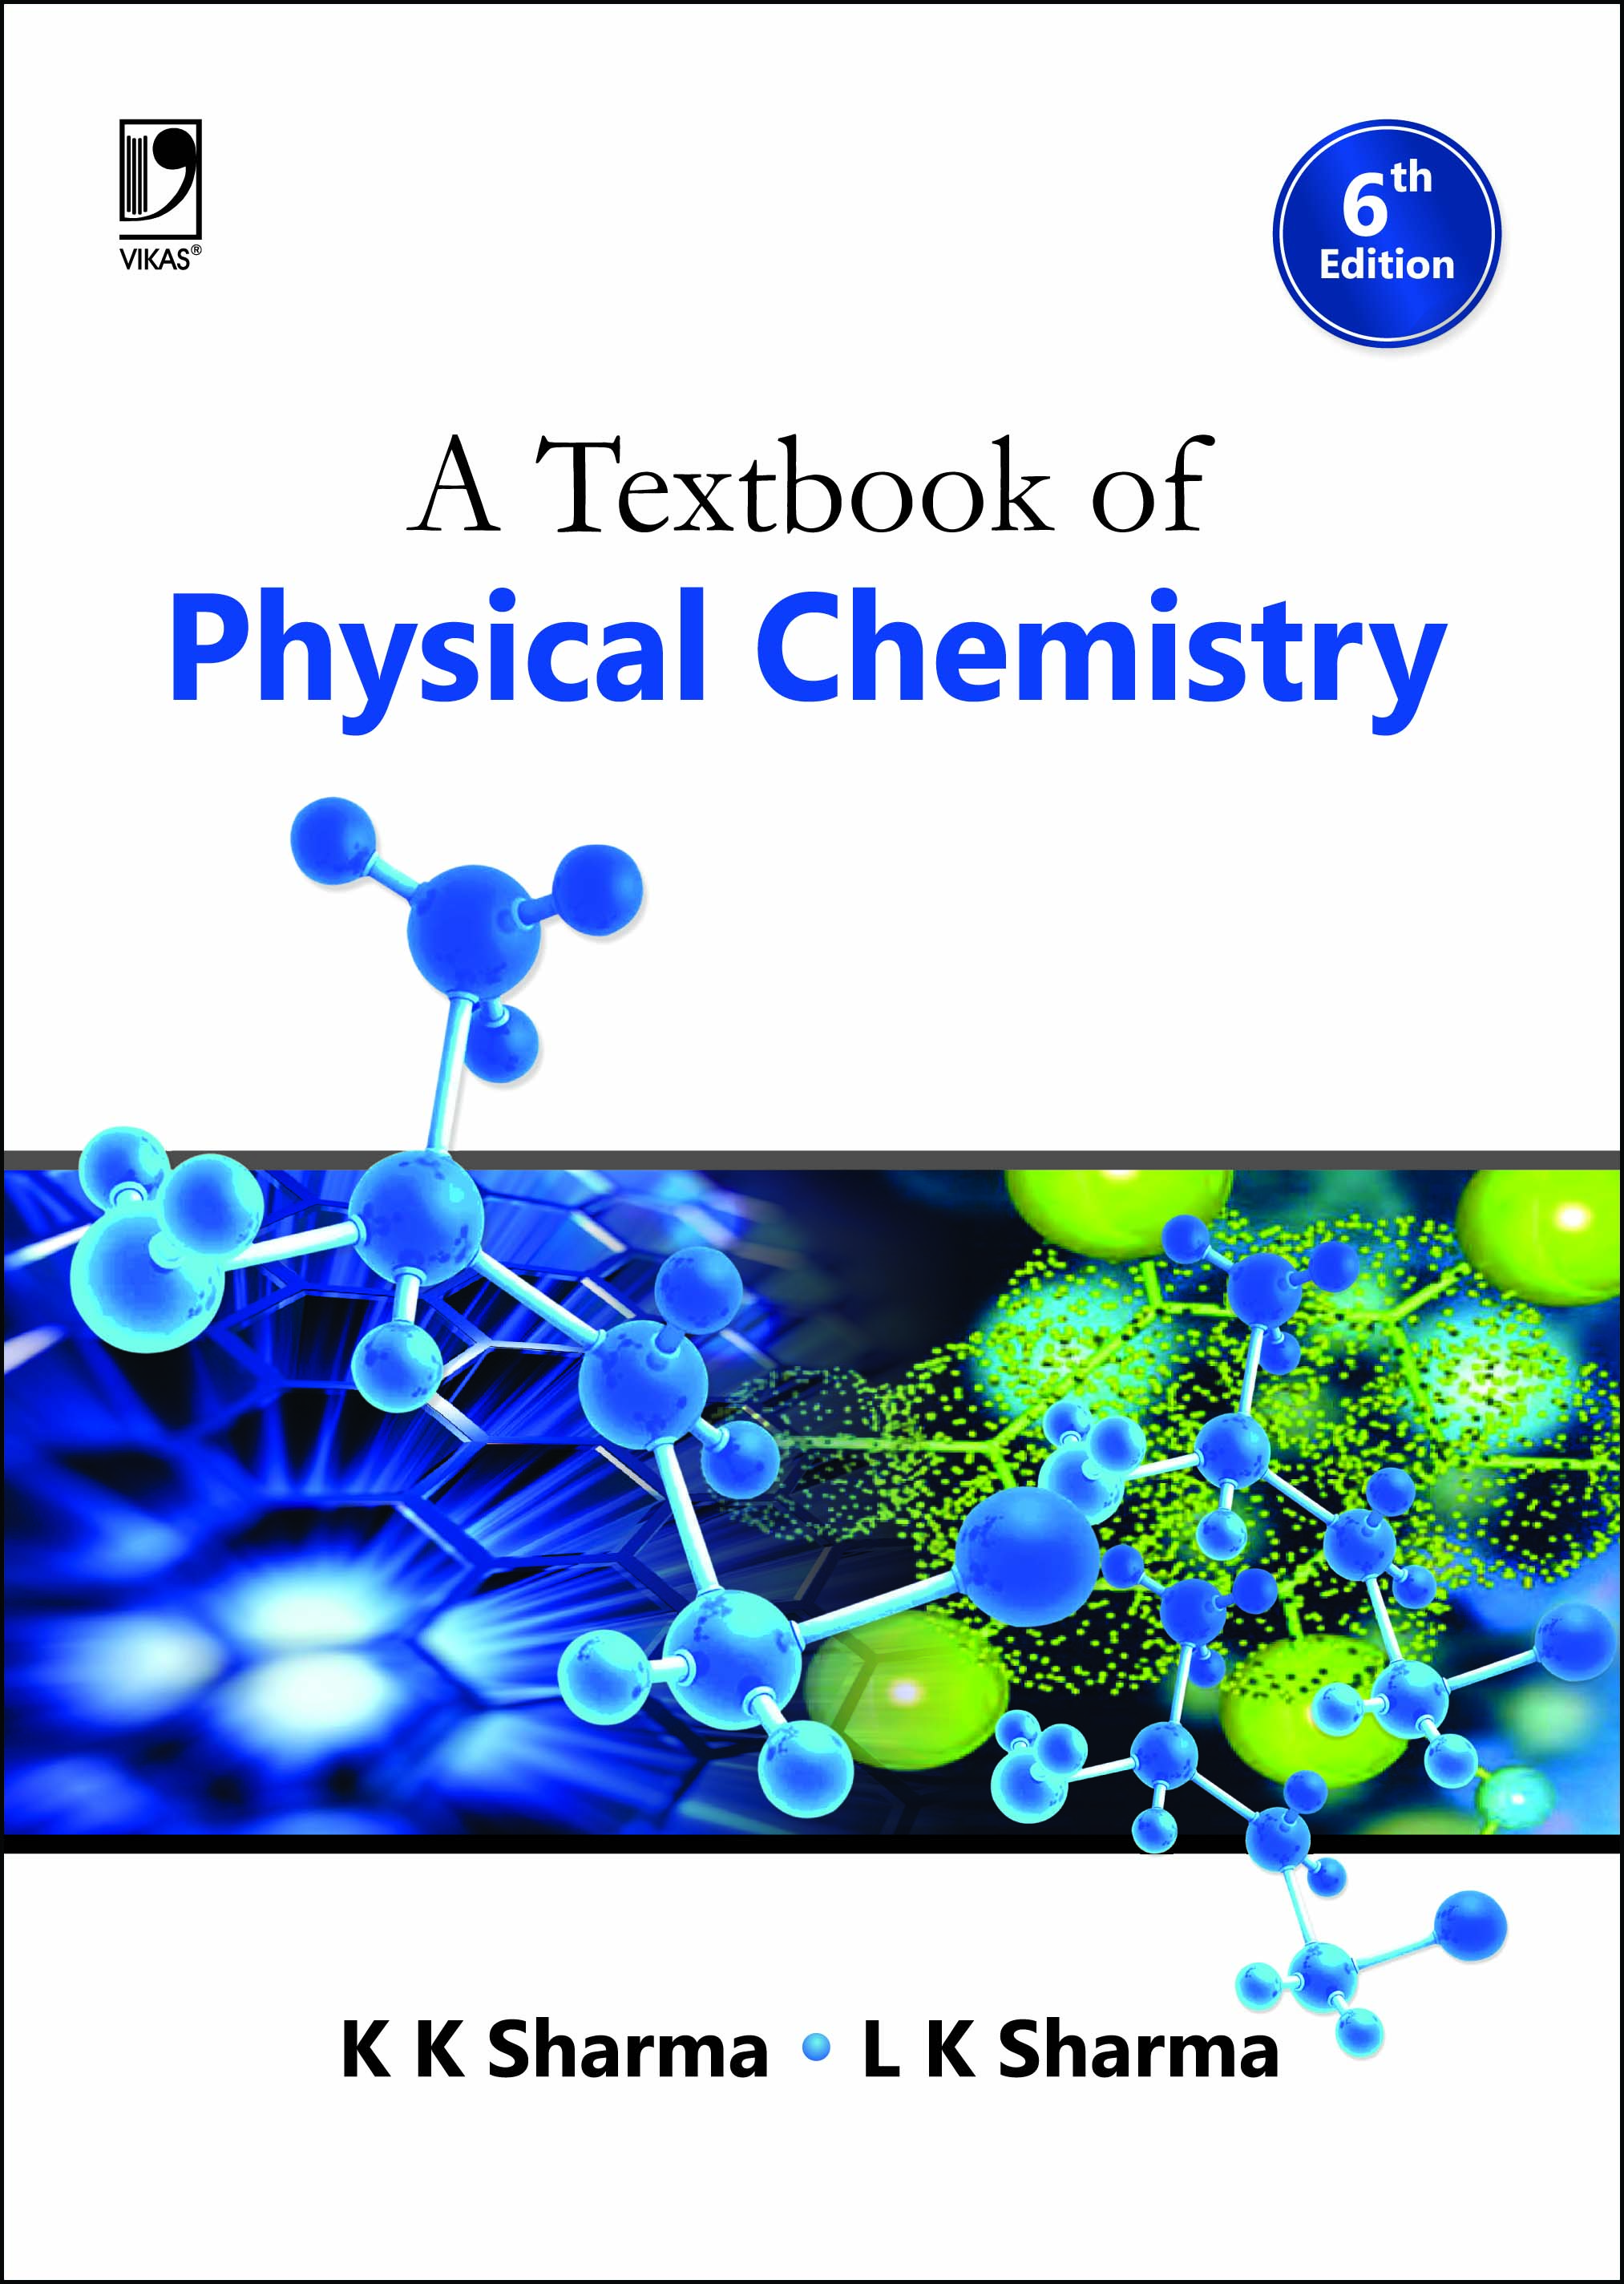 A TEXTBOOK OF PHYSICAL CHEMISTRY, 6/e